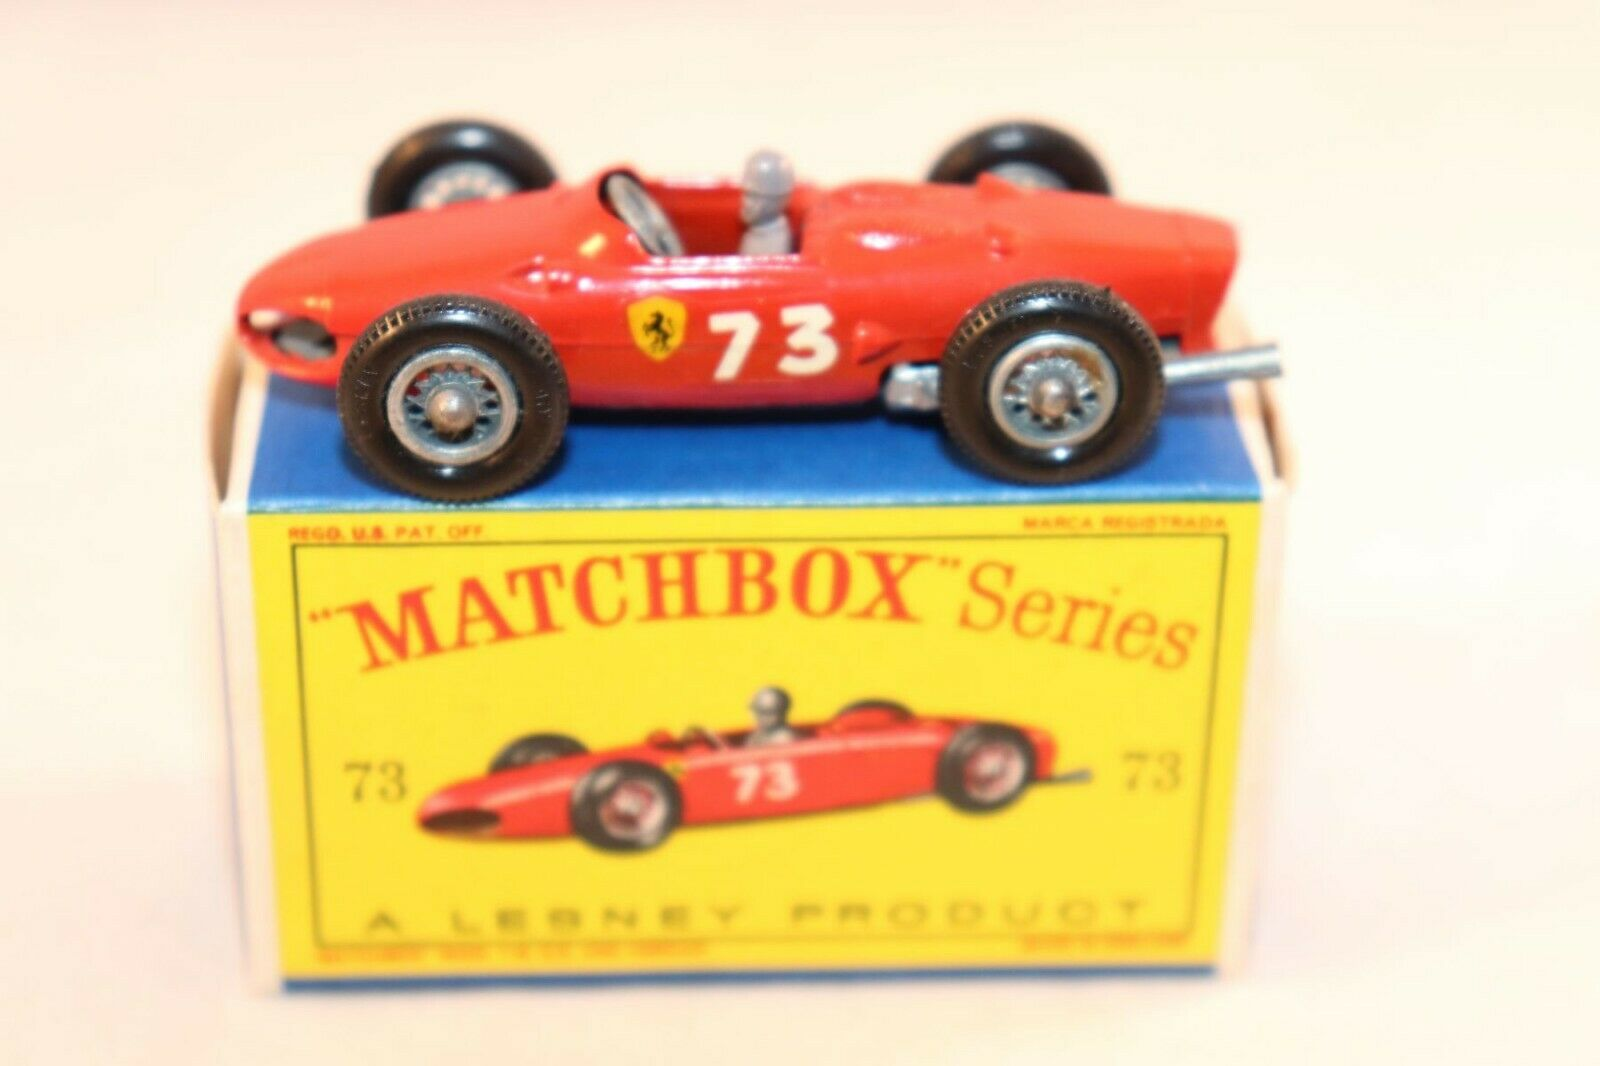 Matchbox Lesney No 73 Ferrari Racing Car mint in box all original condition